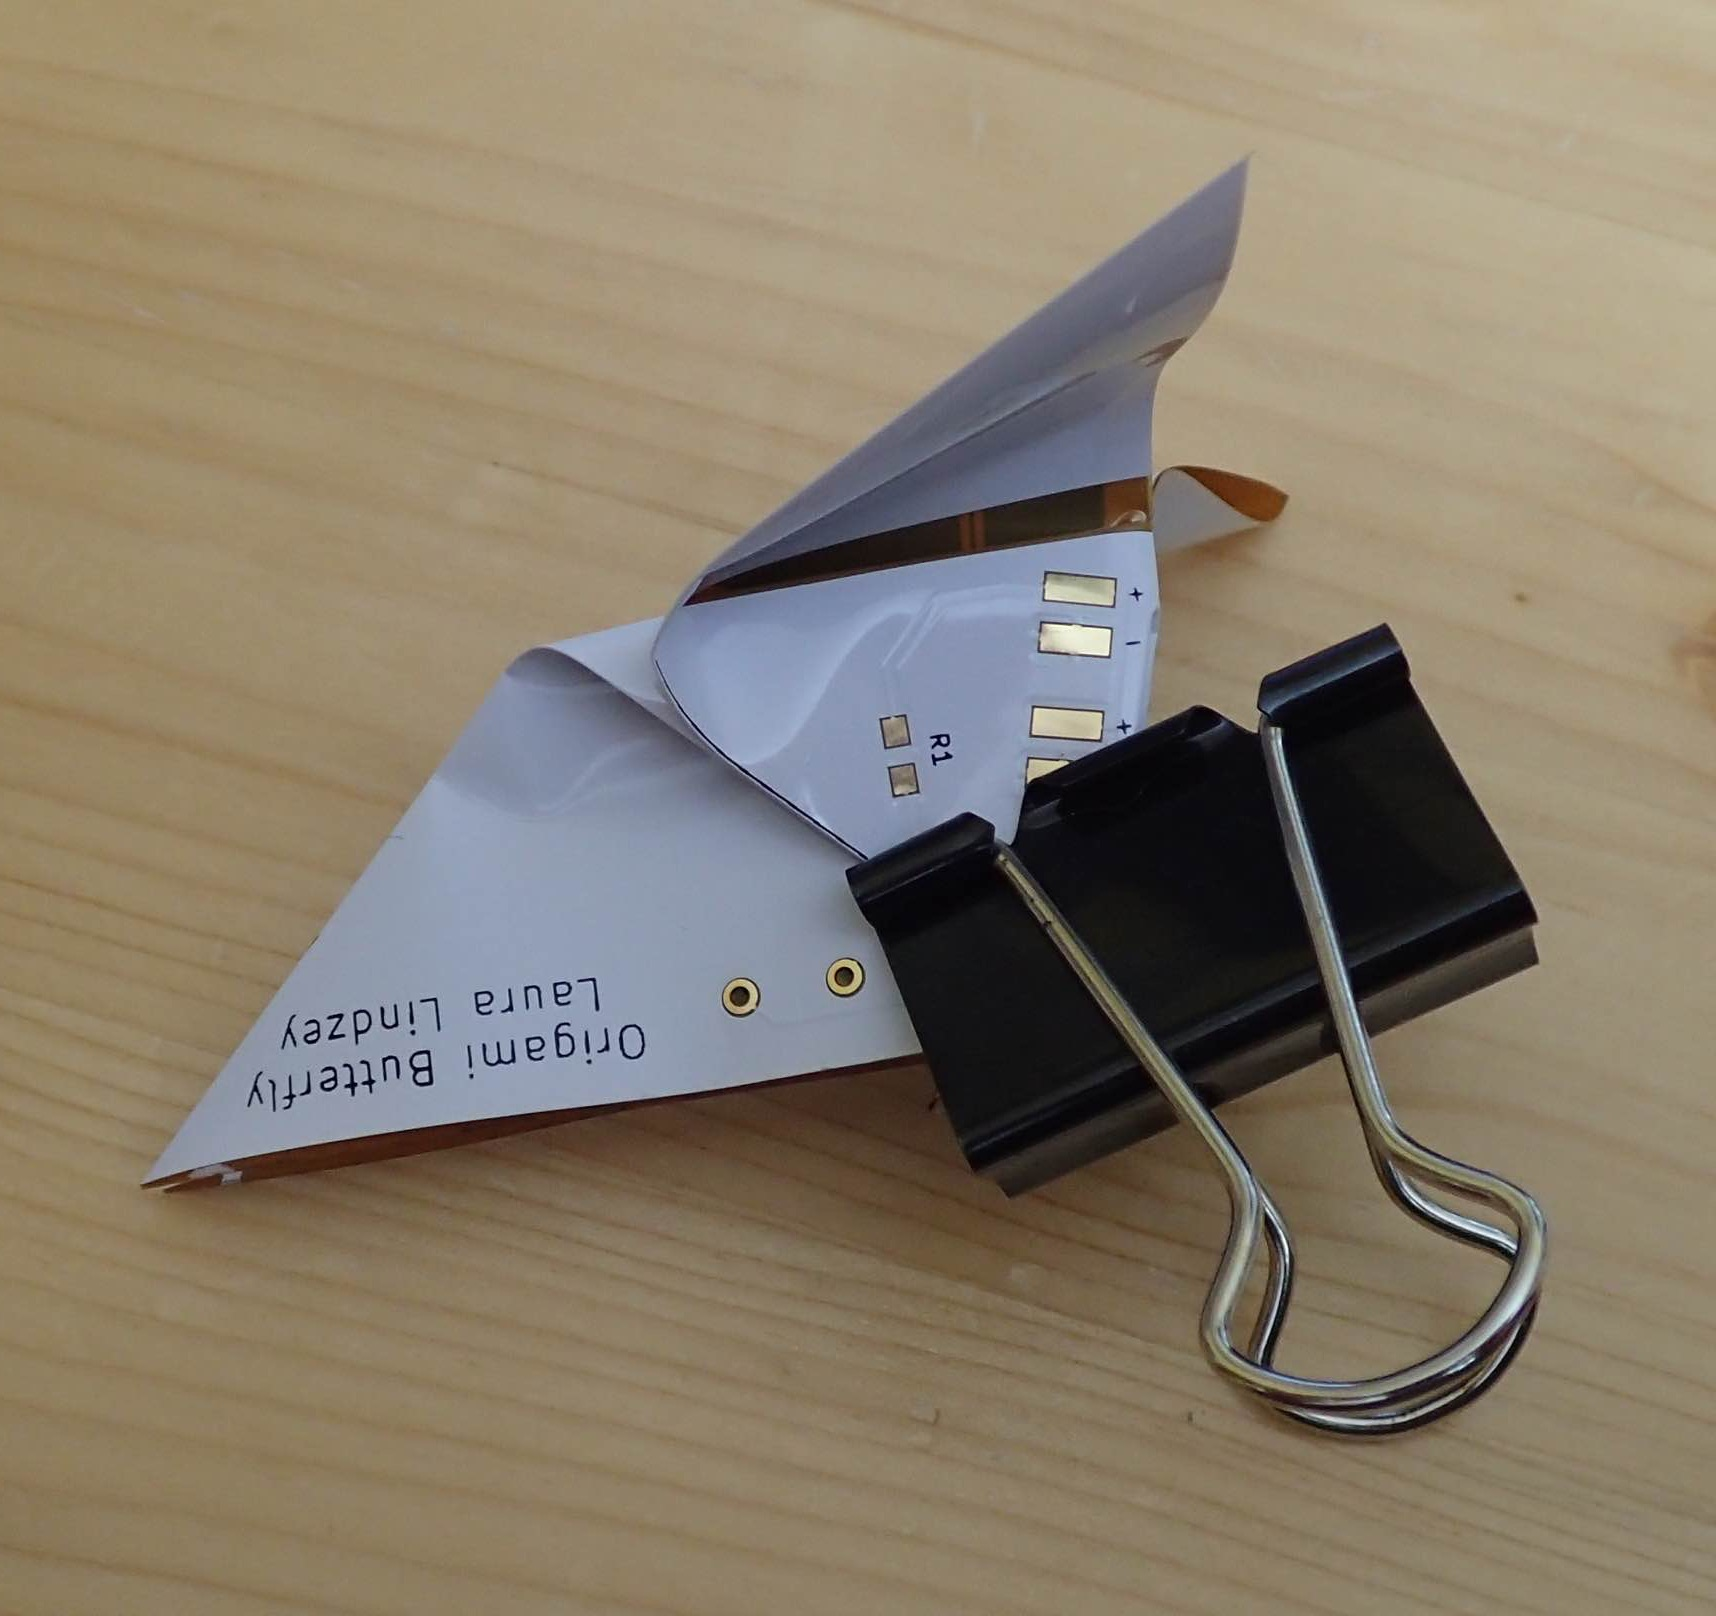 Using a binderclip to help train the wing creases.